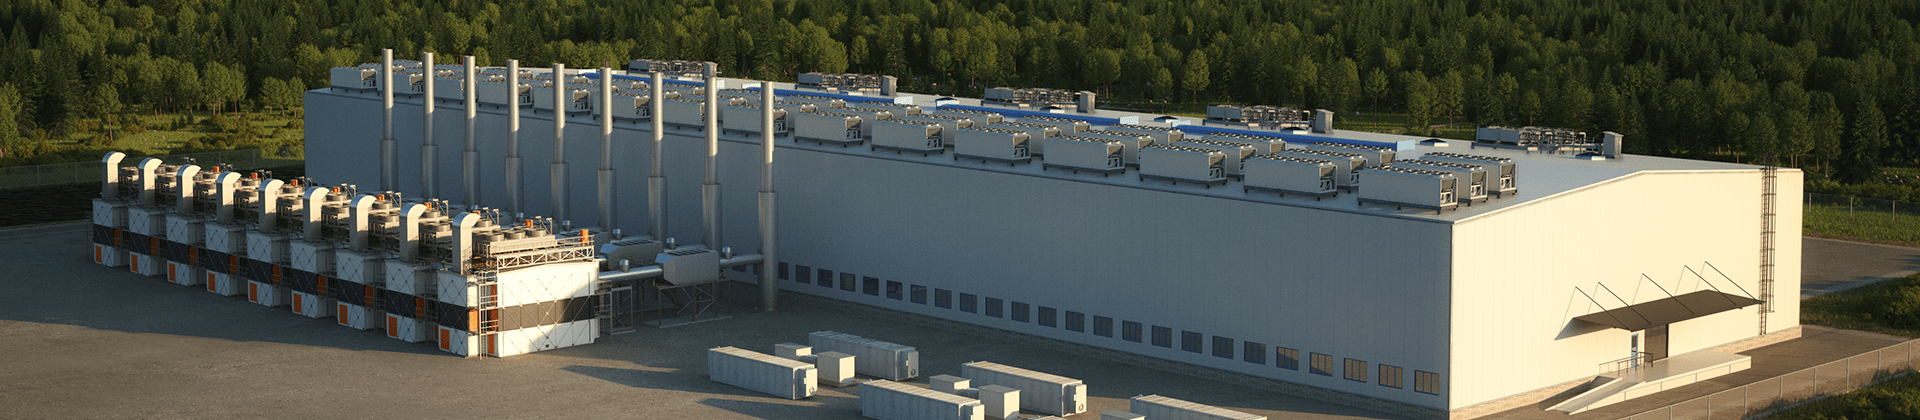 Benefits of a hybrid gas engine power plant for data center on site generation